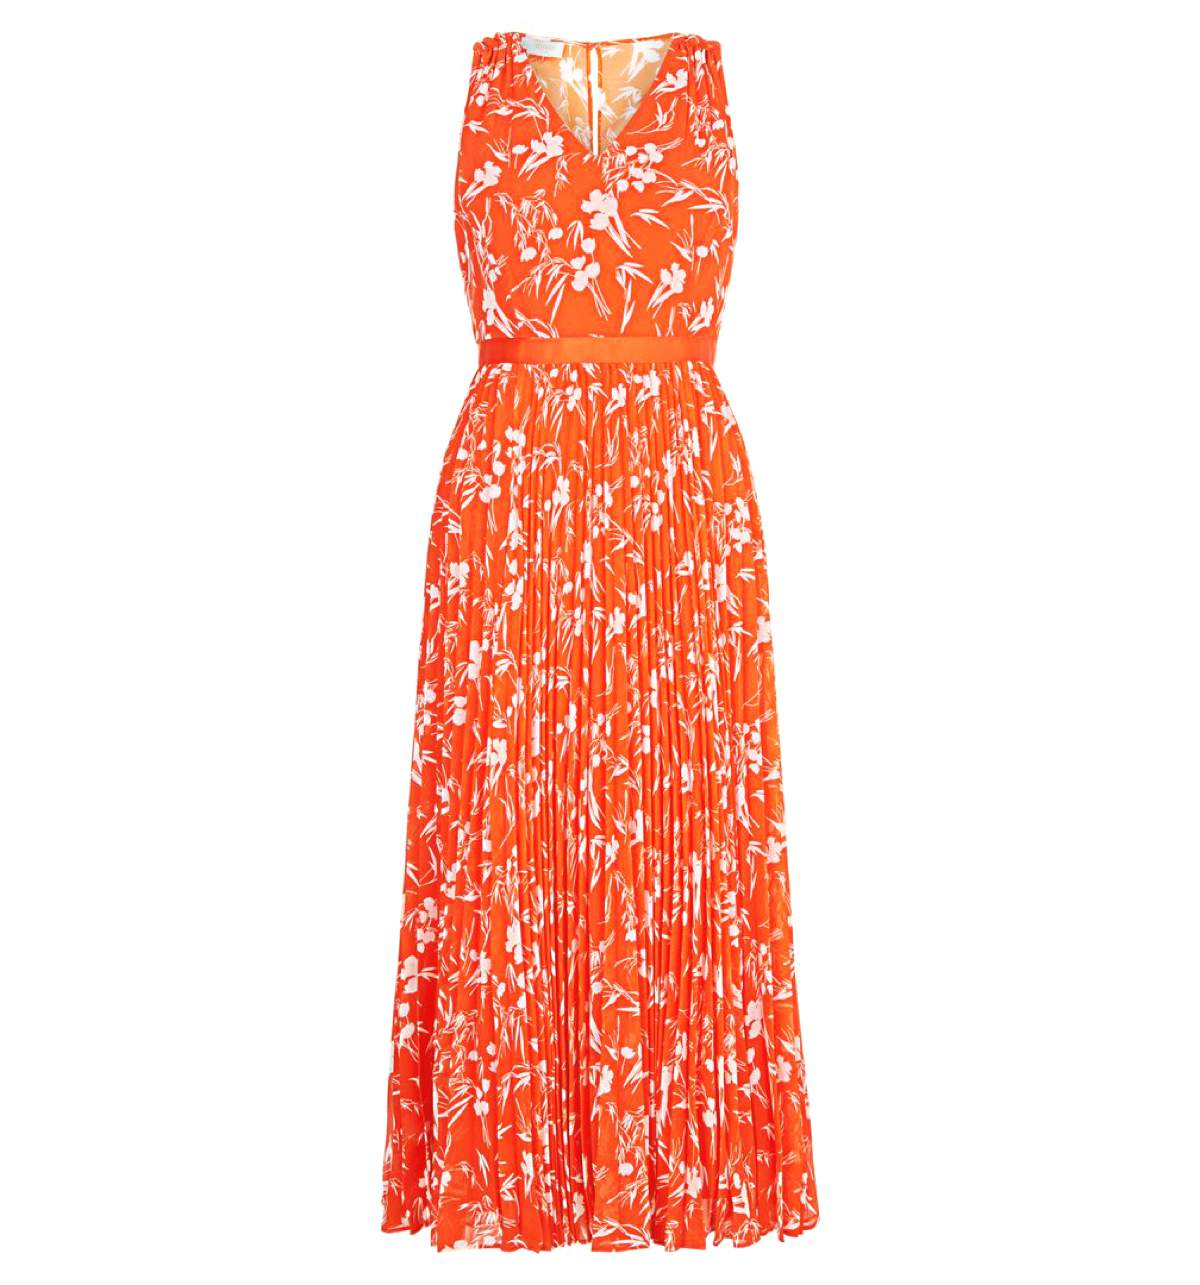 HOBBS Lilah Dress £179